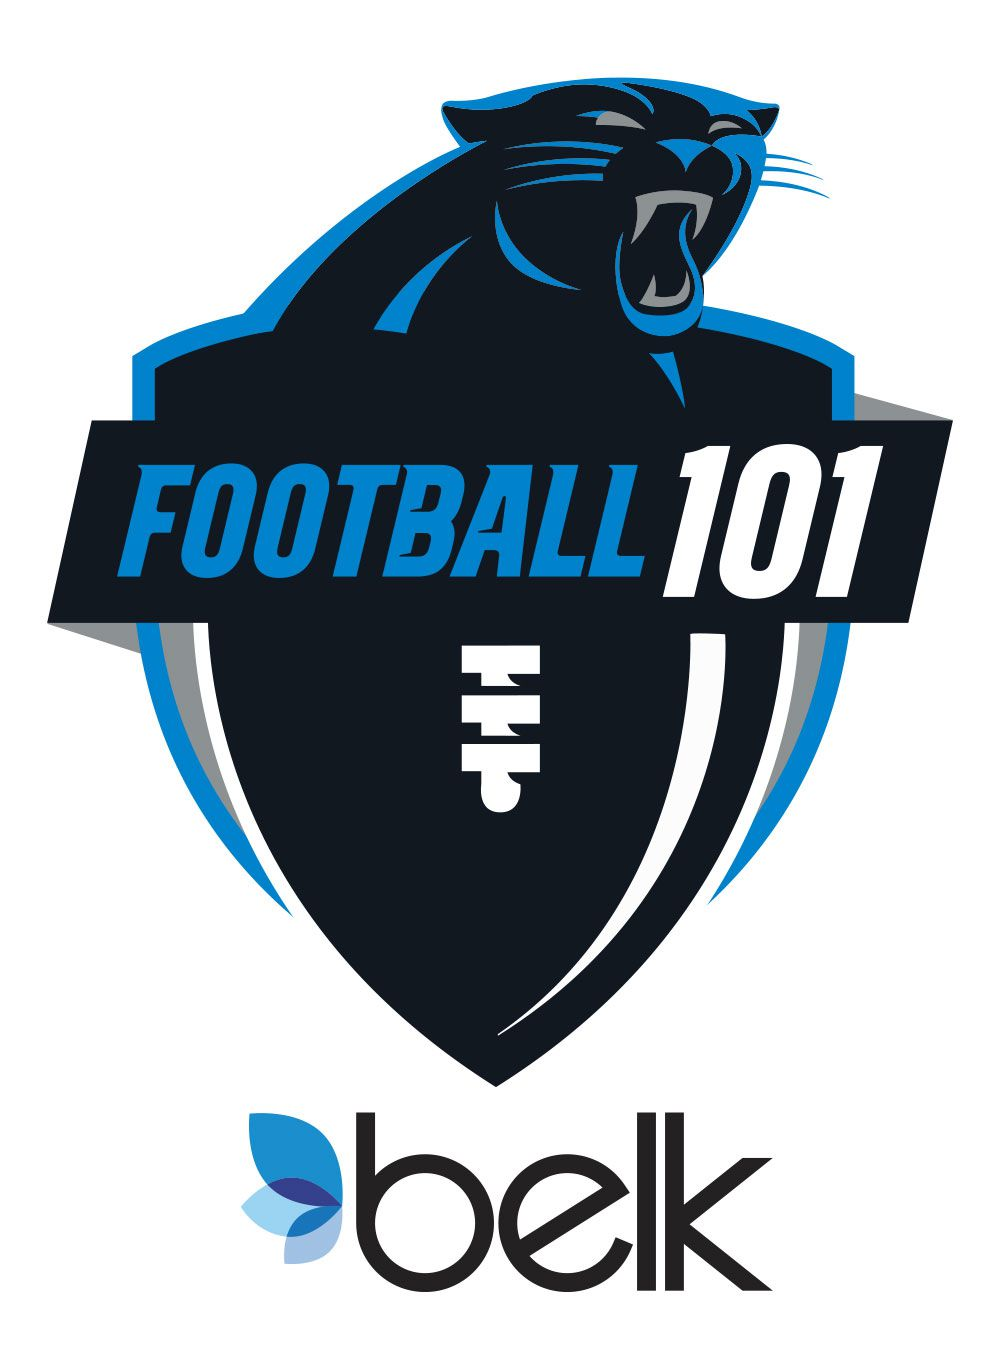 Football 101 Logo<br><span>Carolina Panthers</span>